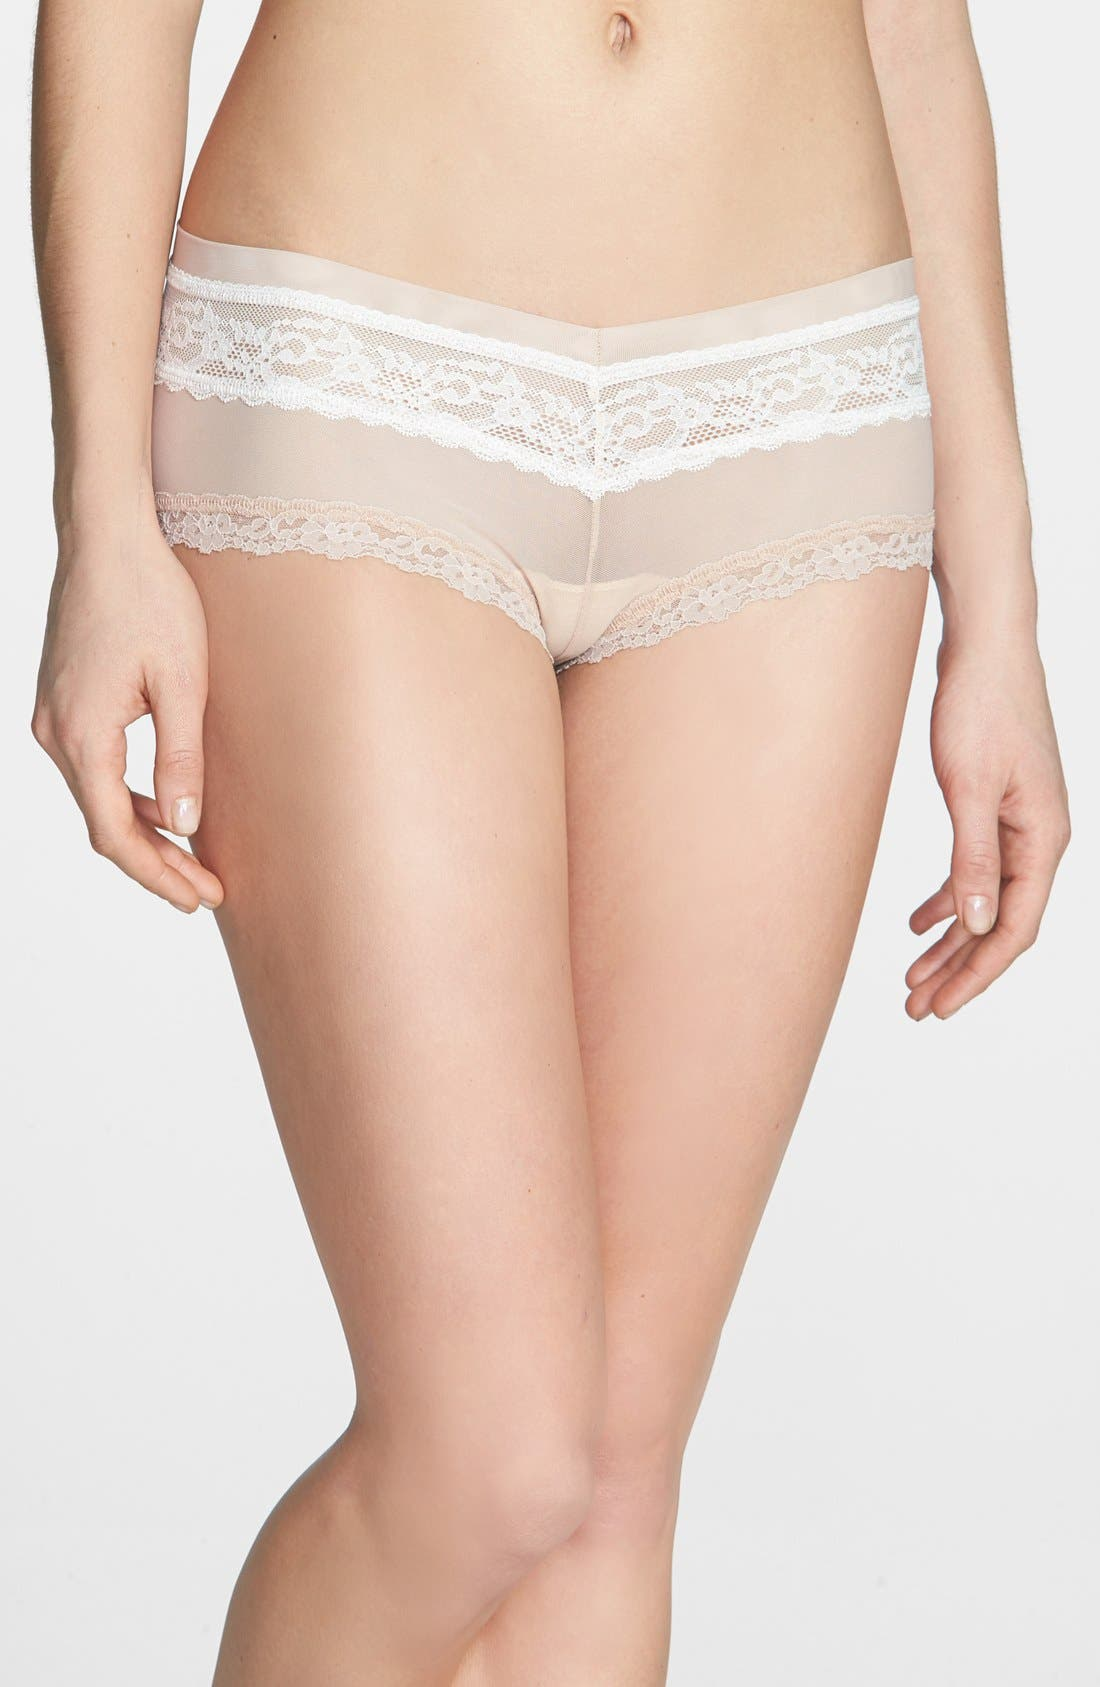 Main Image - Hanky Panky 'Sheer Indulgence' Lace Trim Boyshorts